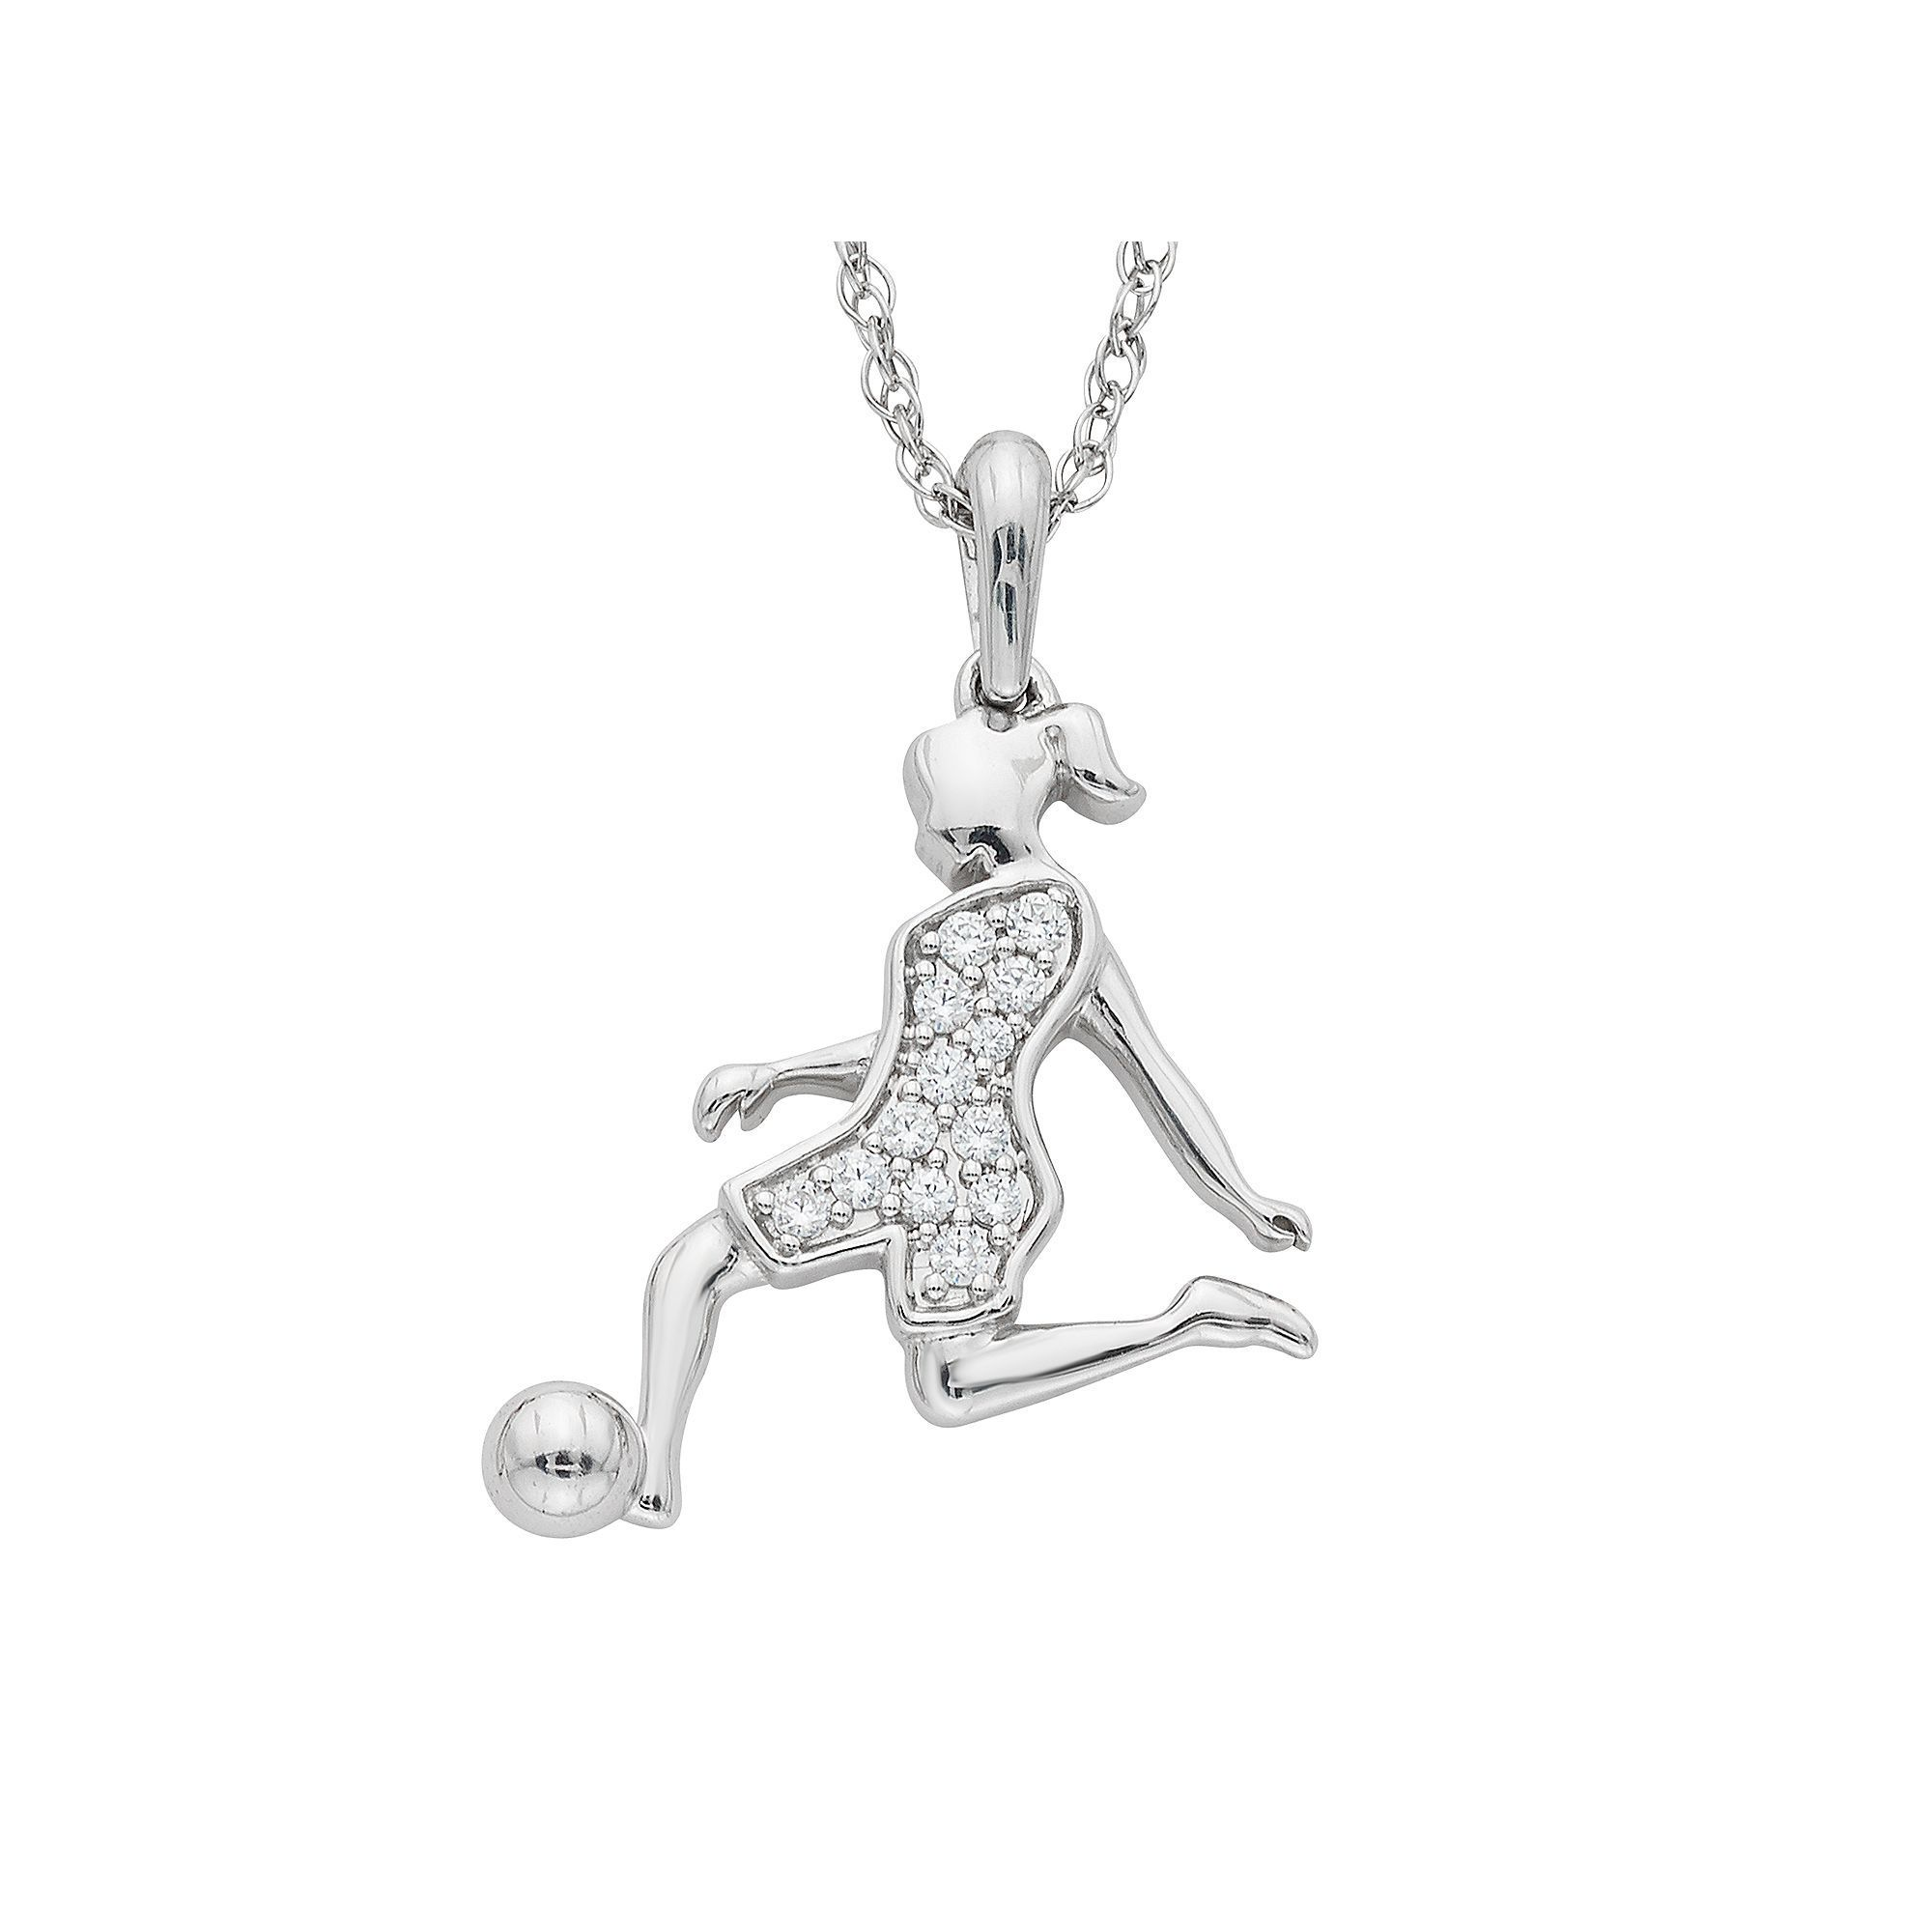 over collection silver jewelry sterling watches shipping product free orders overstock soccer ball journee on pendant